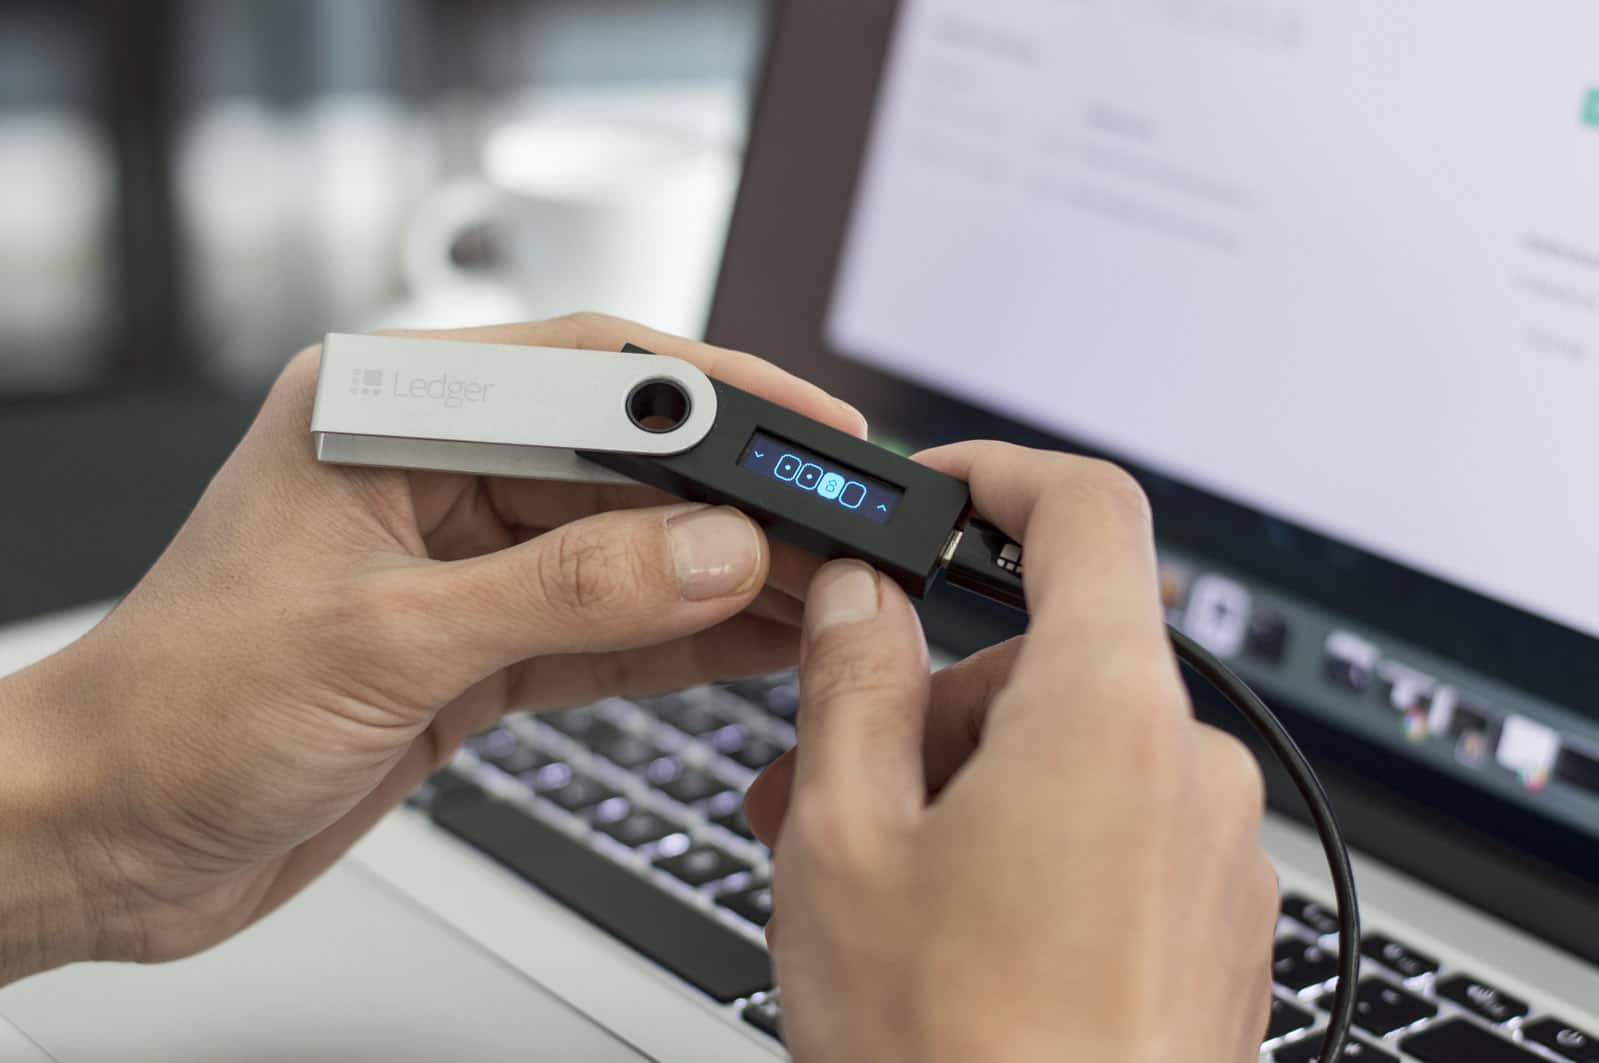 Ledger Advanced Passphrase